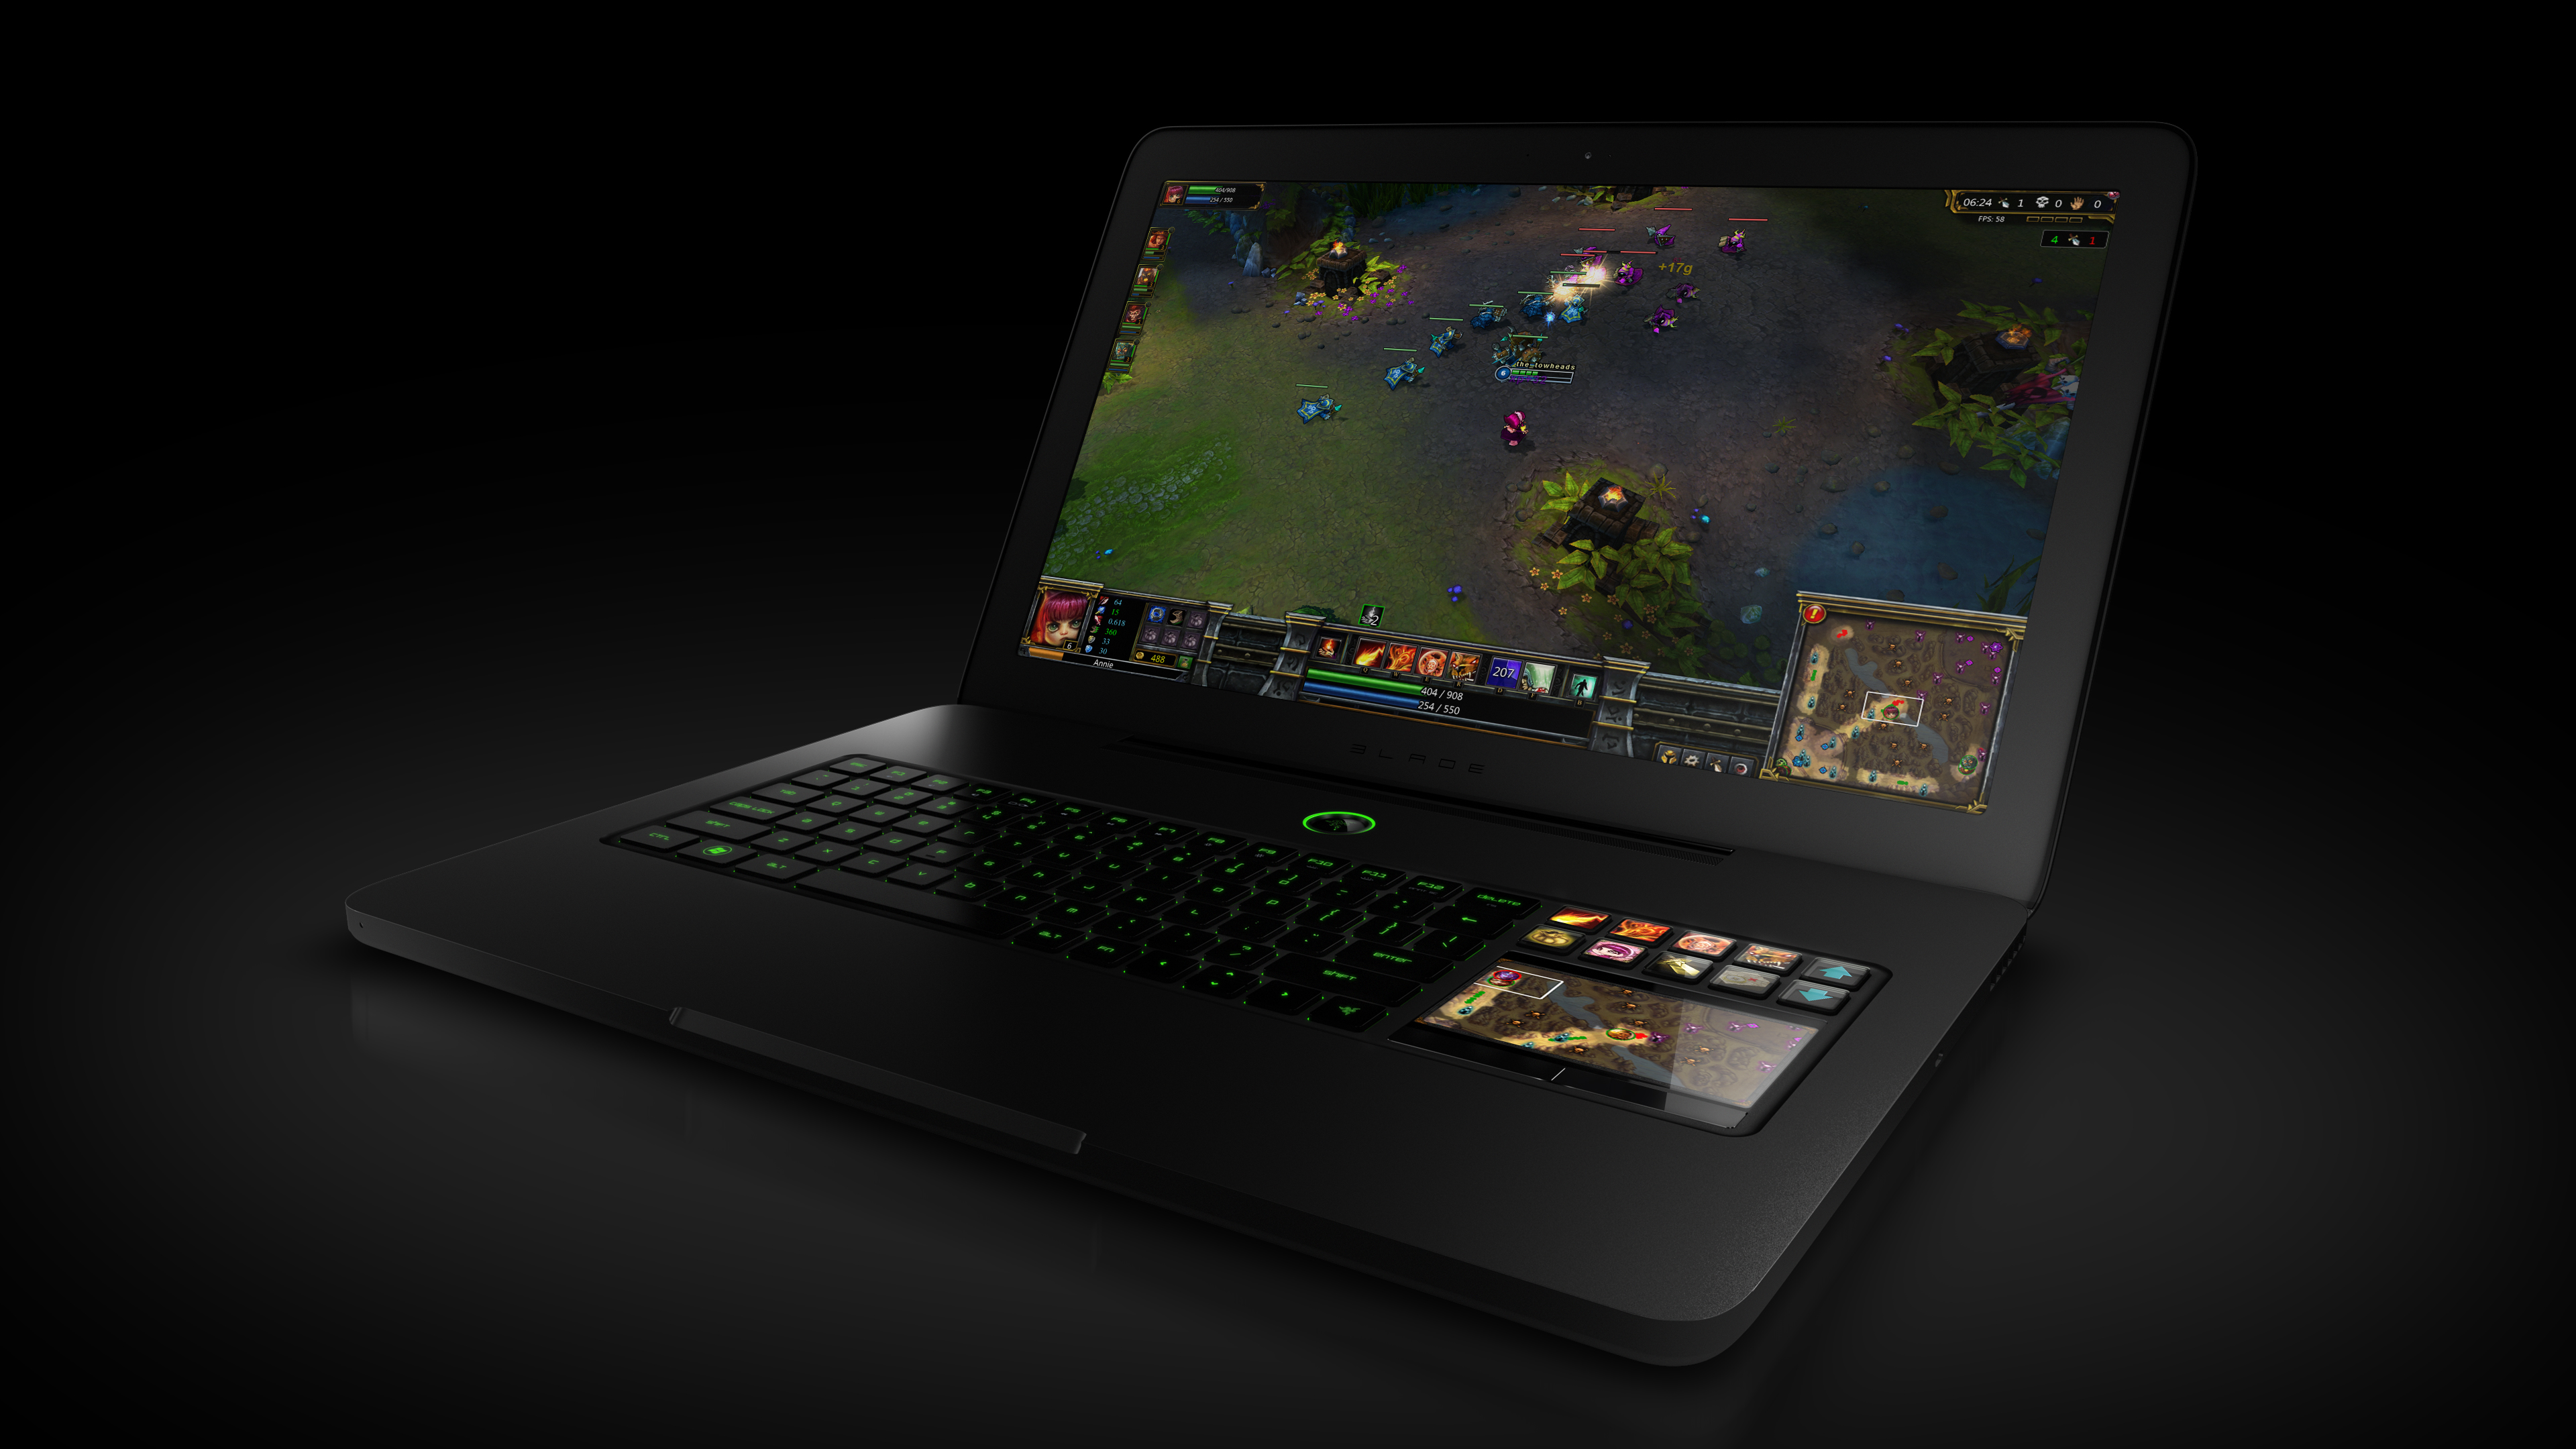 razer_blade_gaming_laptop_11